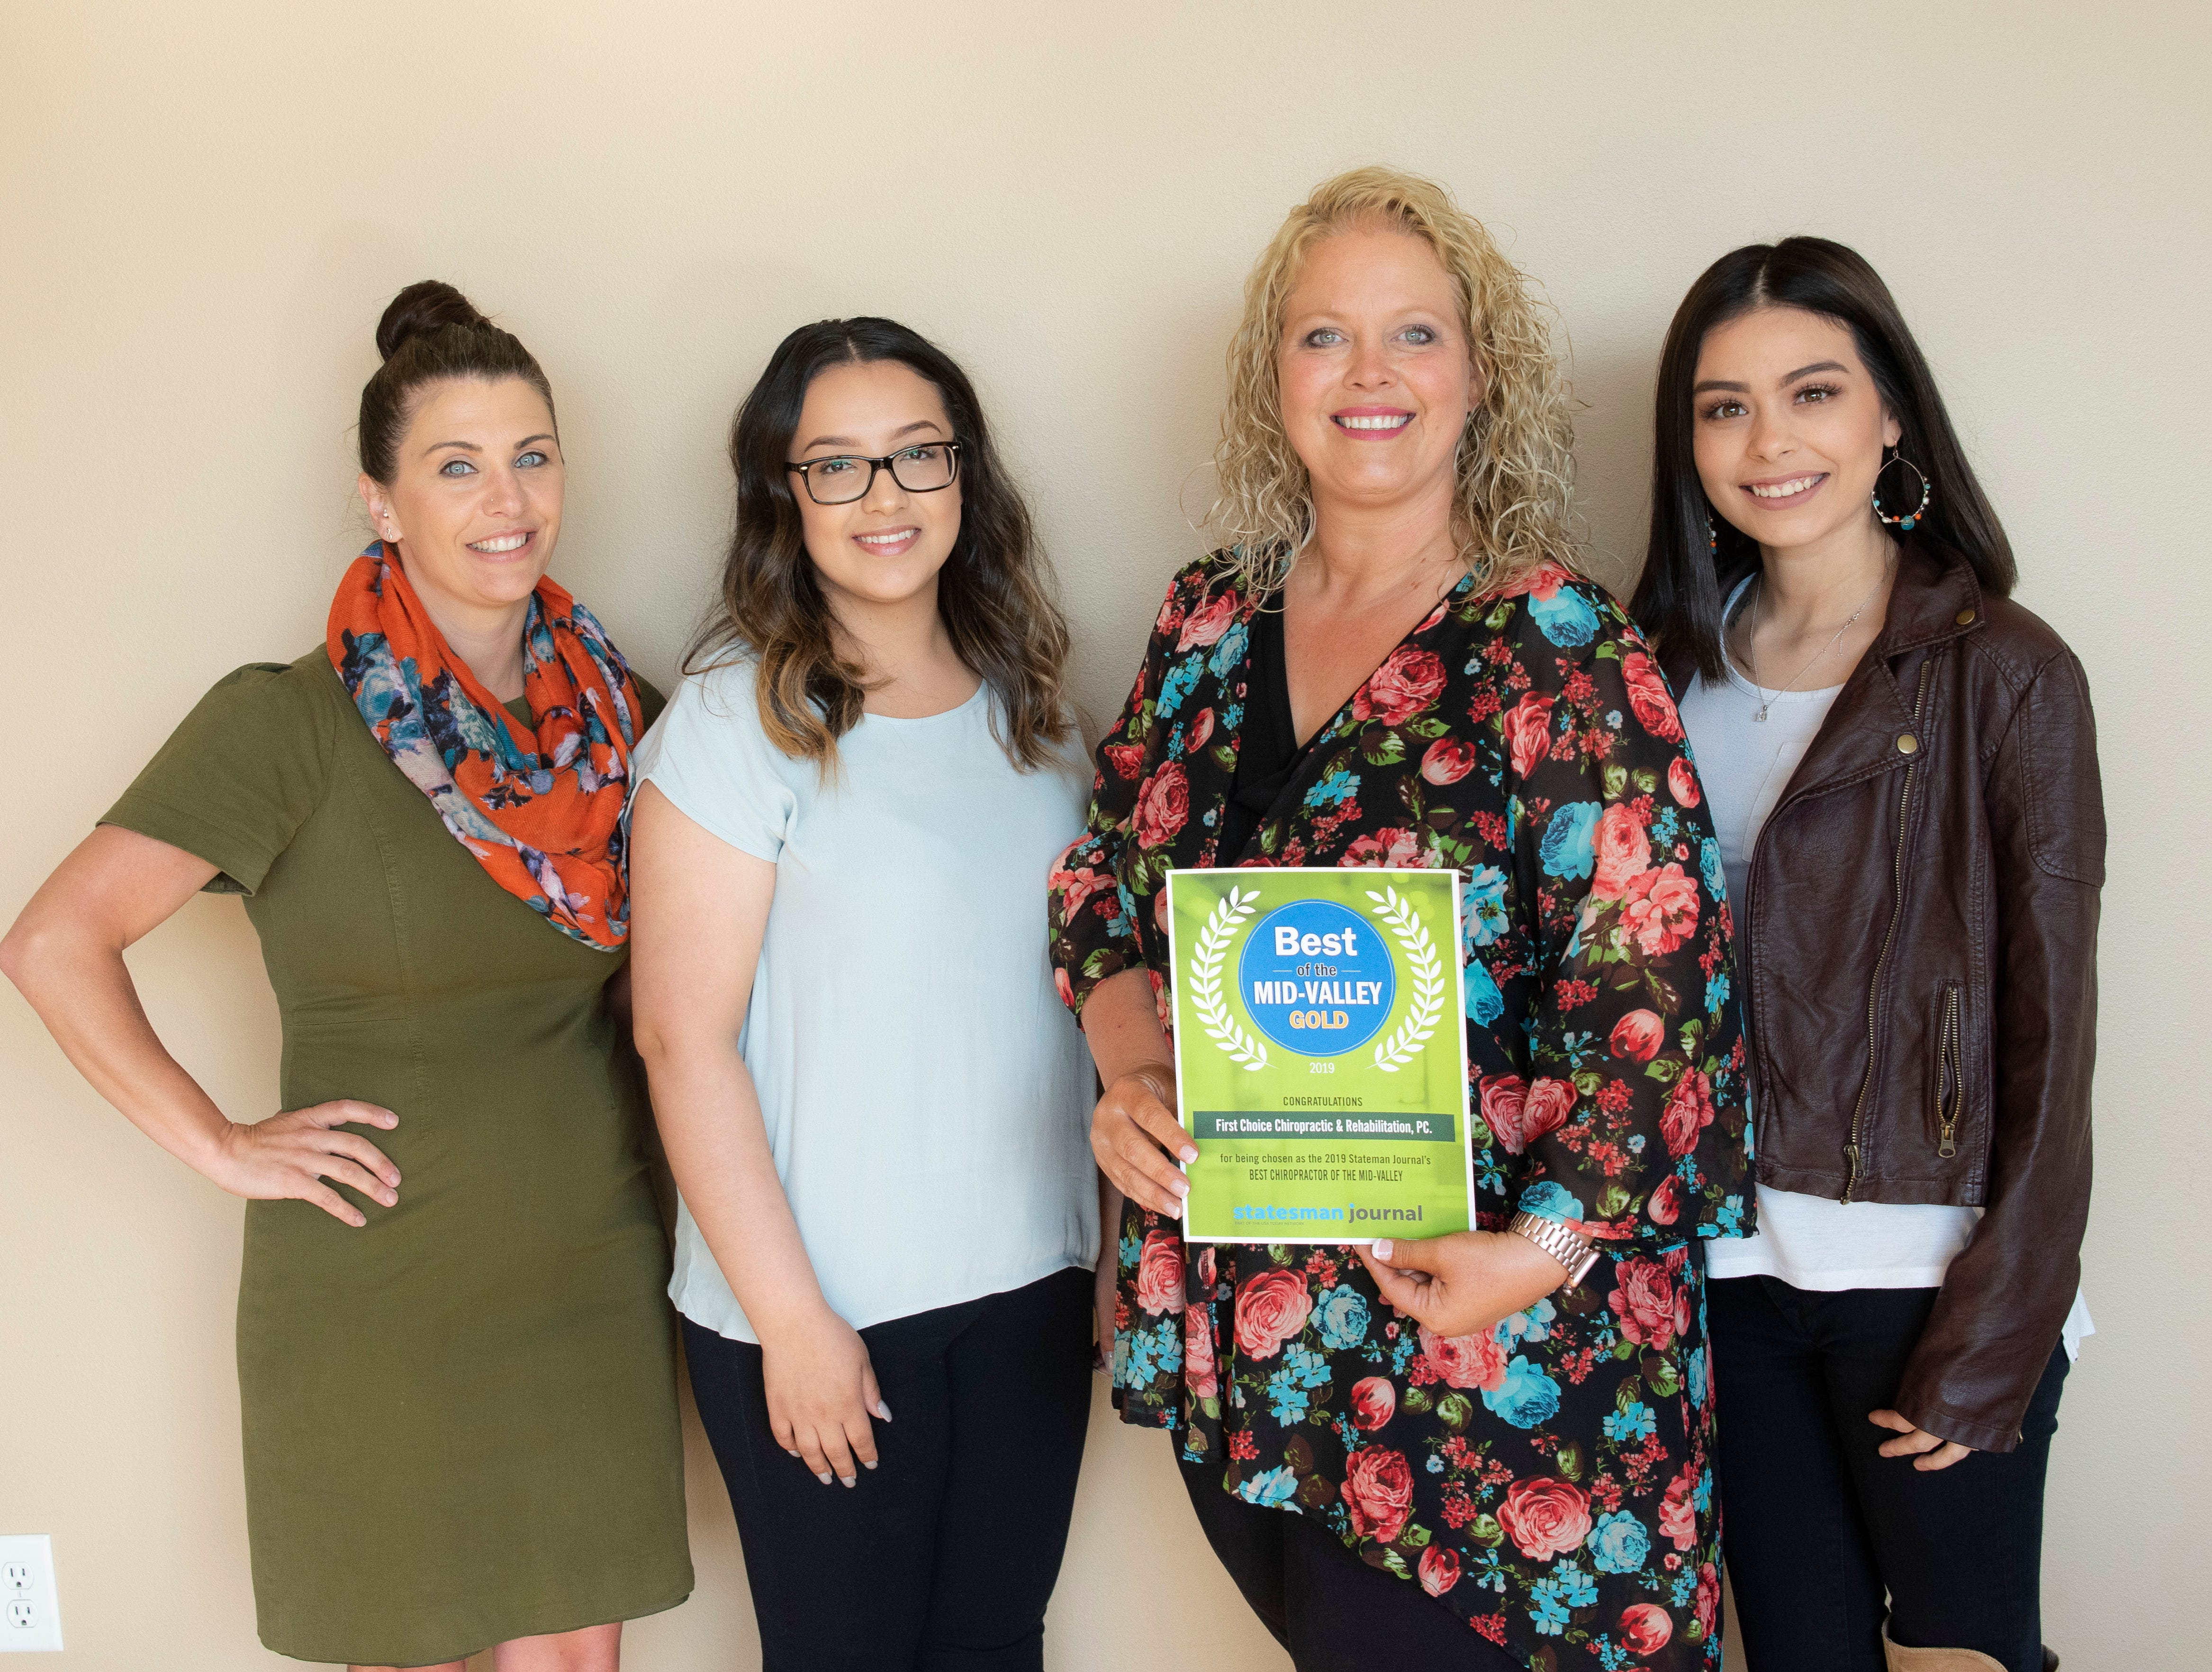 First Choice Chiropractic & Rehabilitation won gold for Best Chiropractor in the 2019 Best of the Mid-Valley.